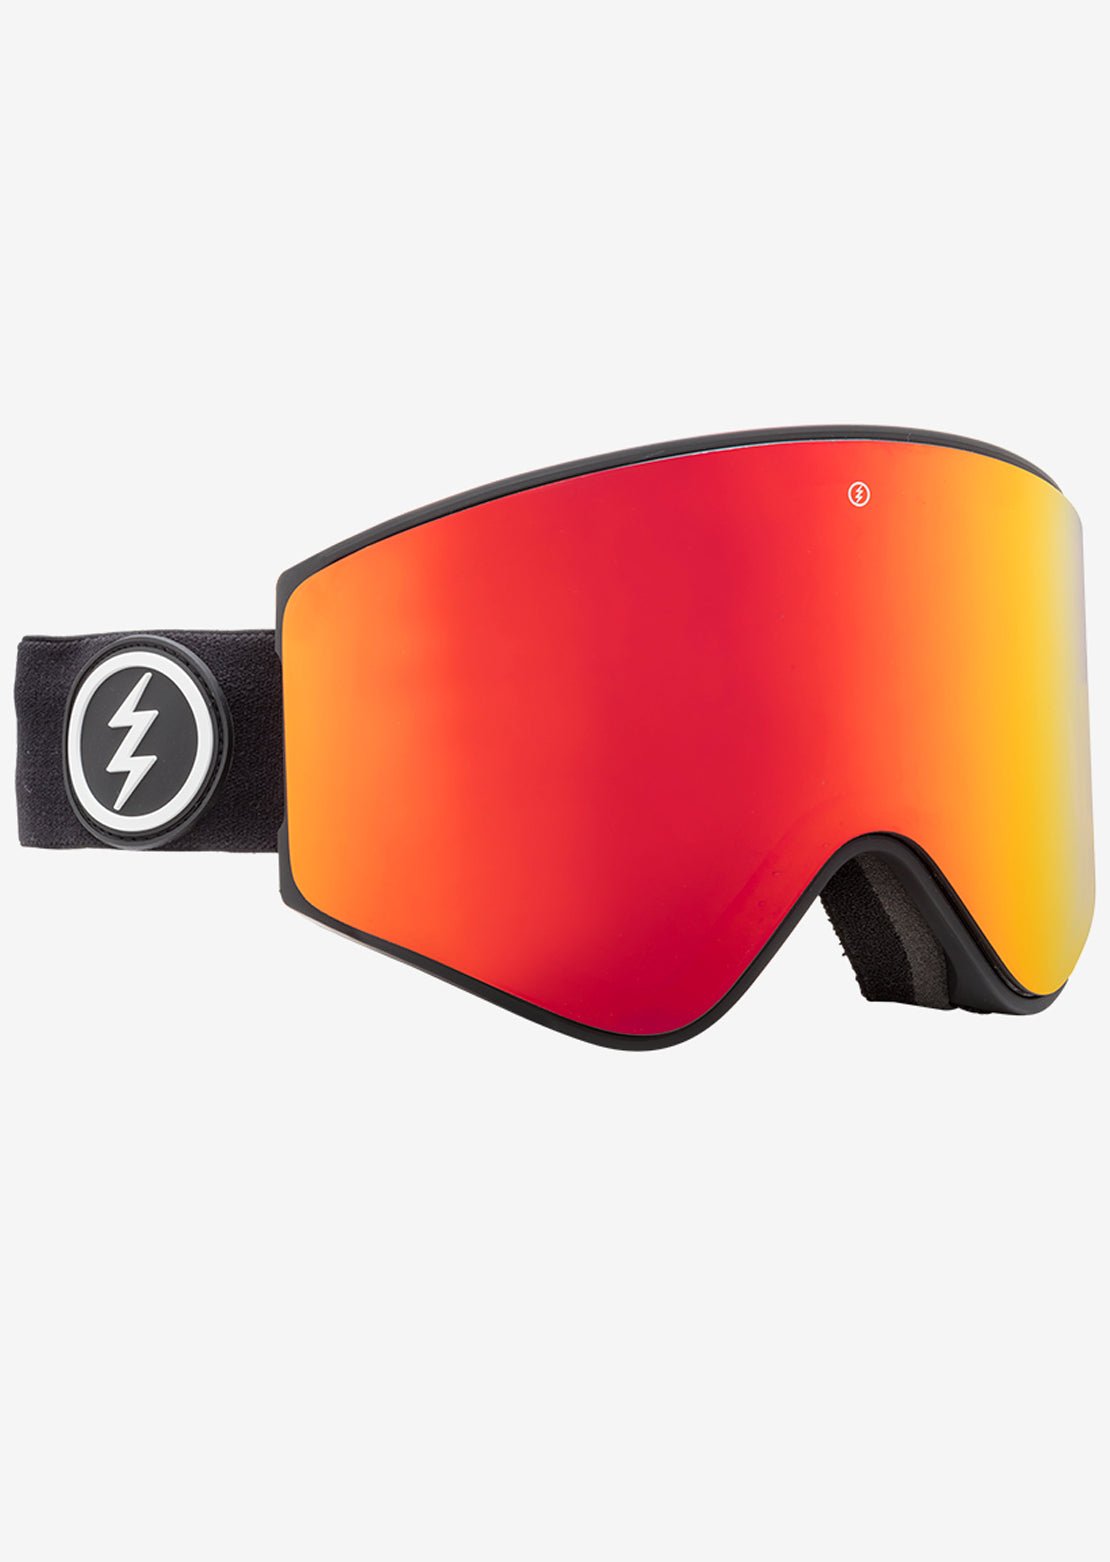 Electric EGX Snow Goggles Matte Black/Brose Red Chrome